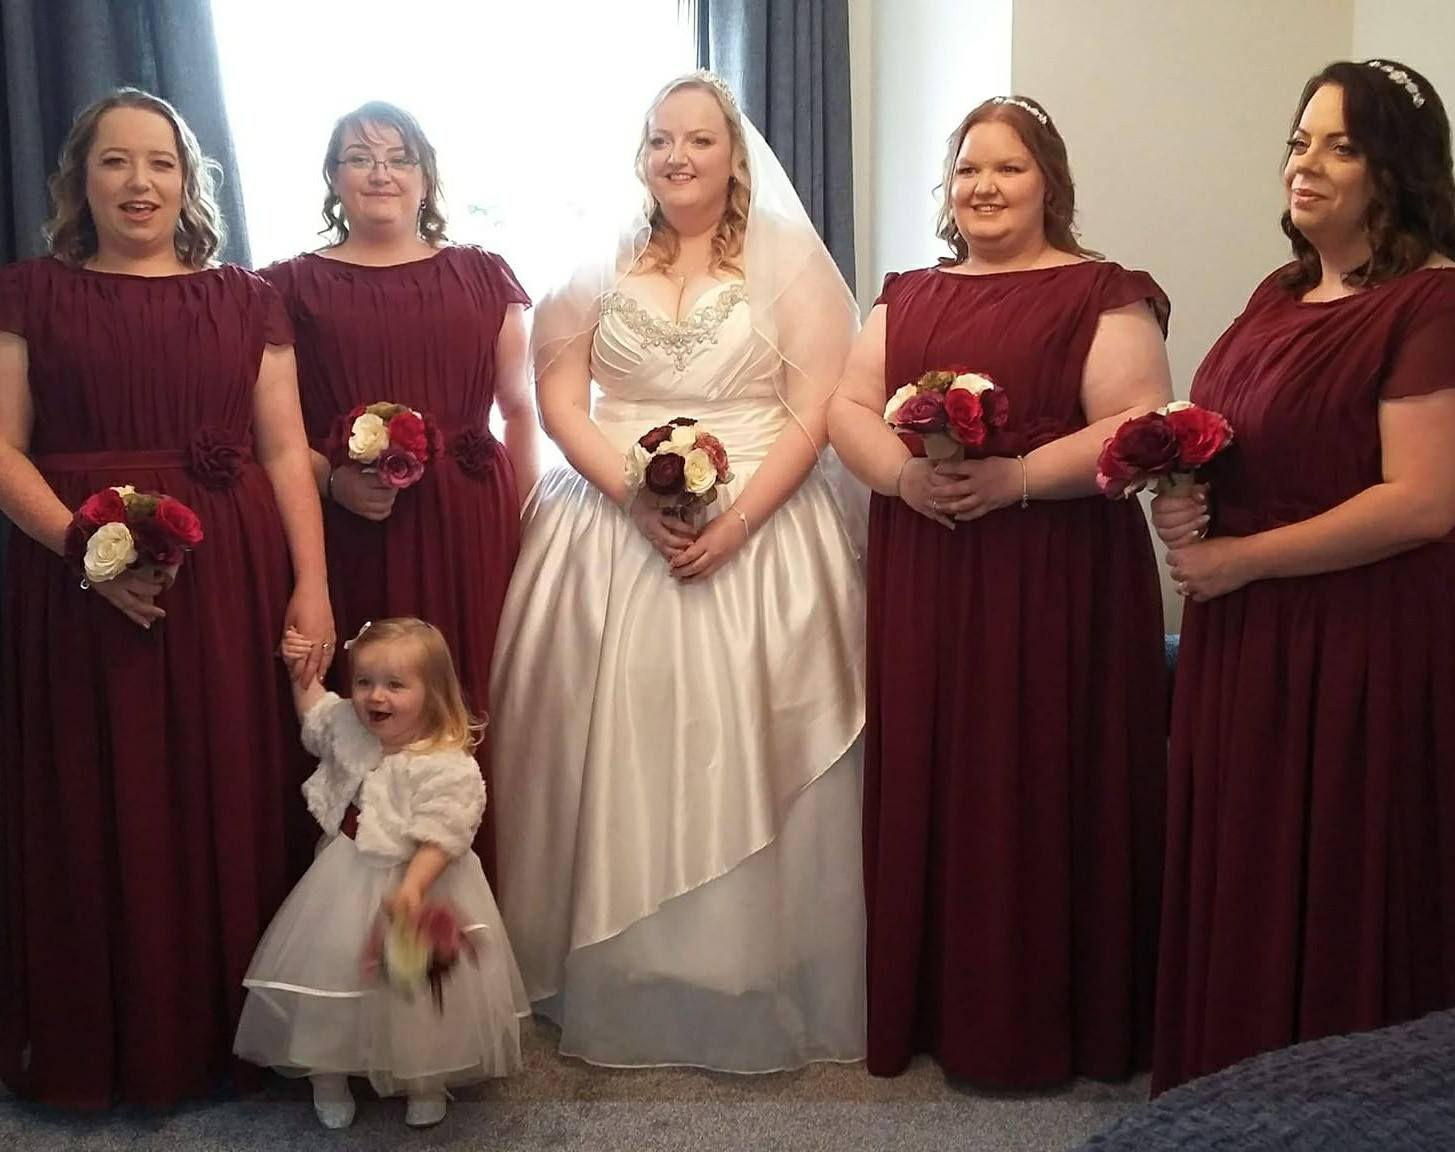 Custom bridal gown and bridesmaids